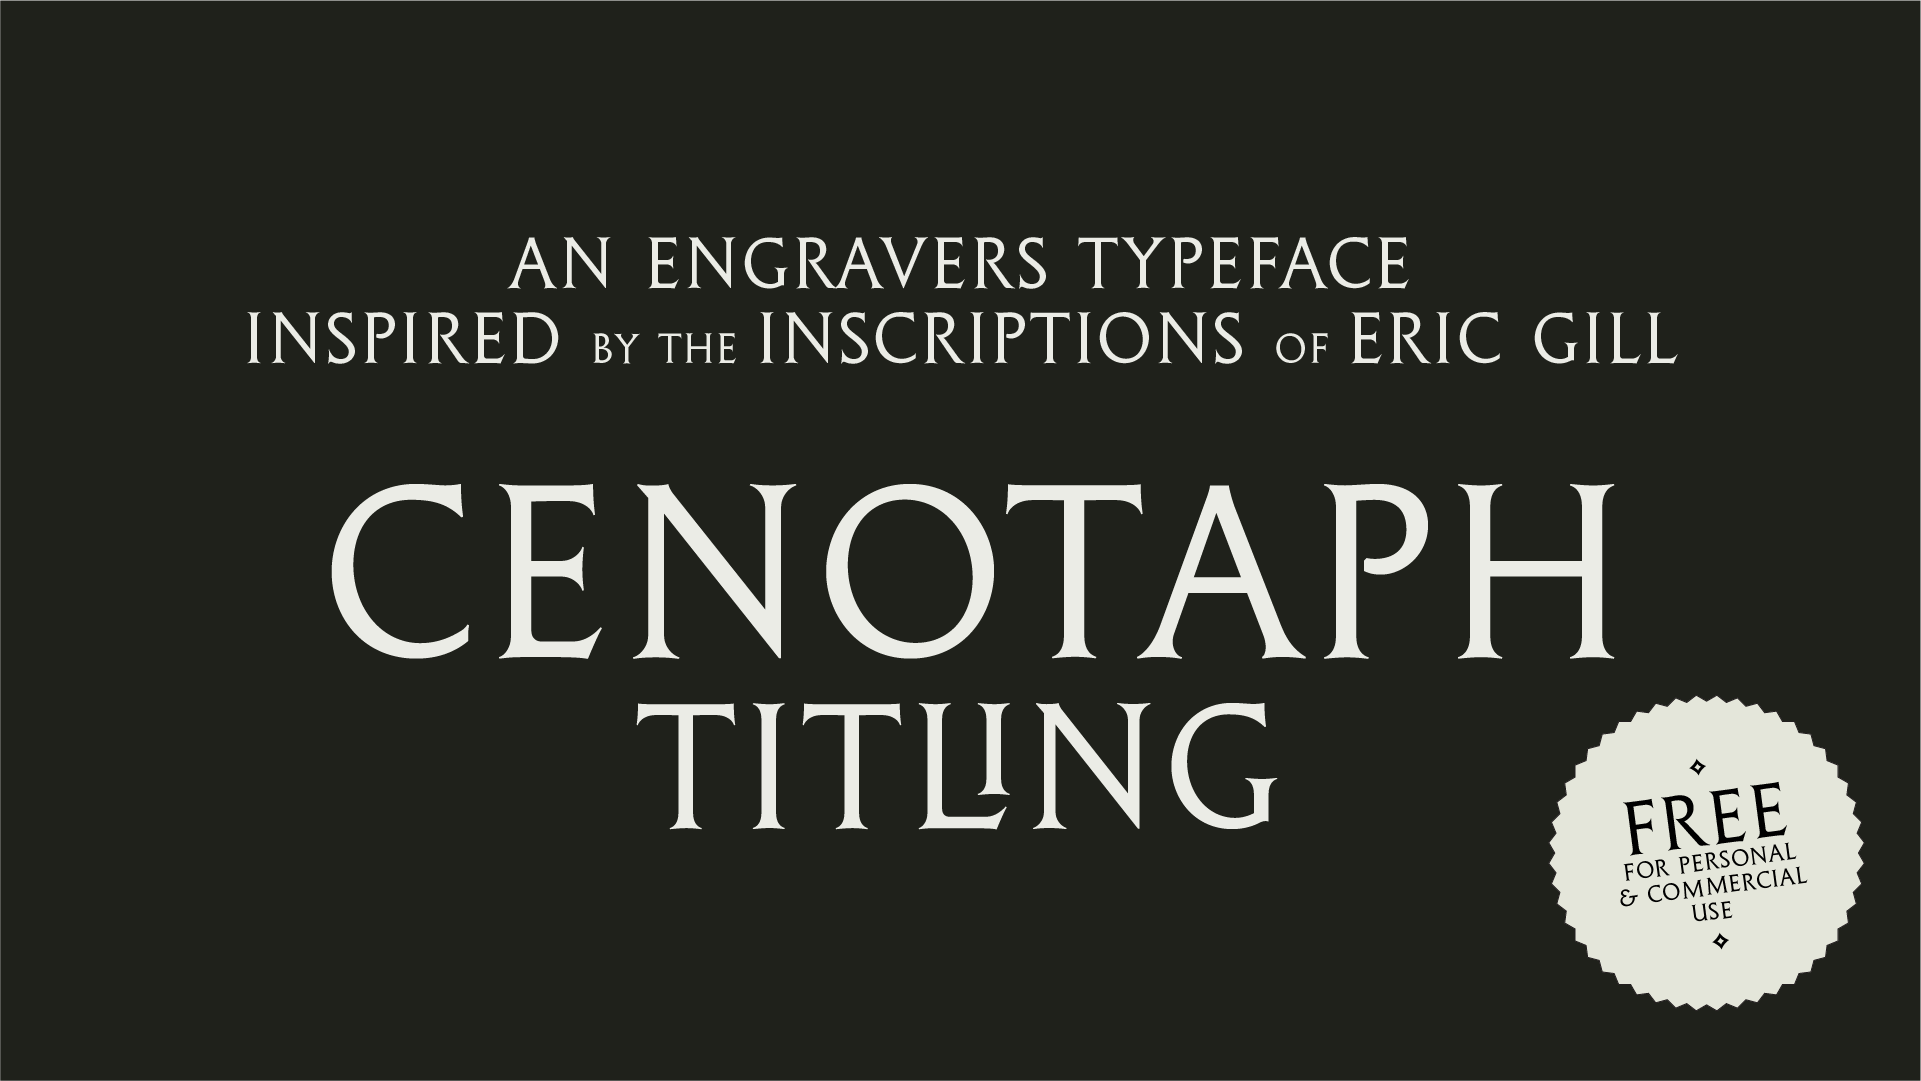 Cenotaph designed by Lewis McGuffie for typeverything.com